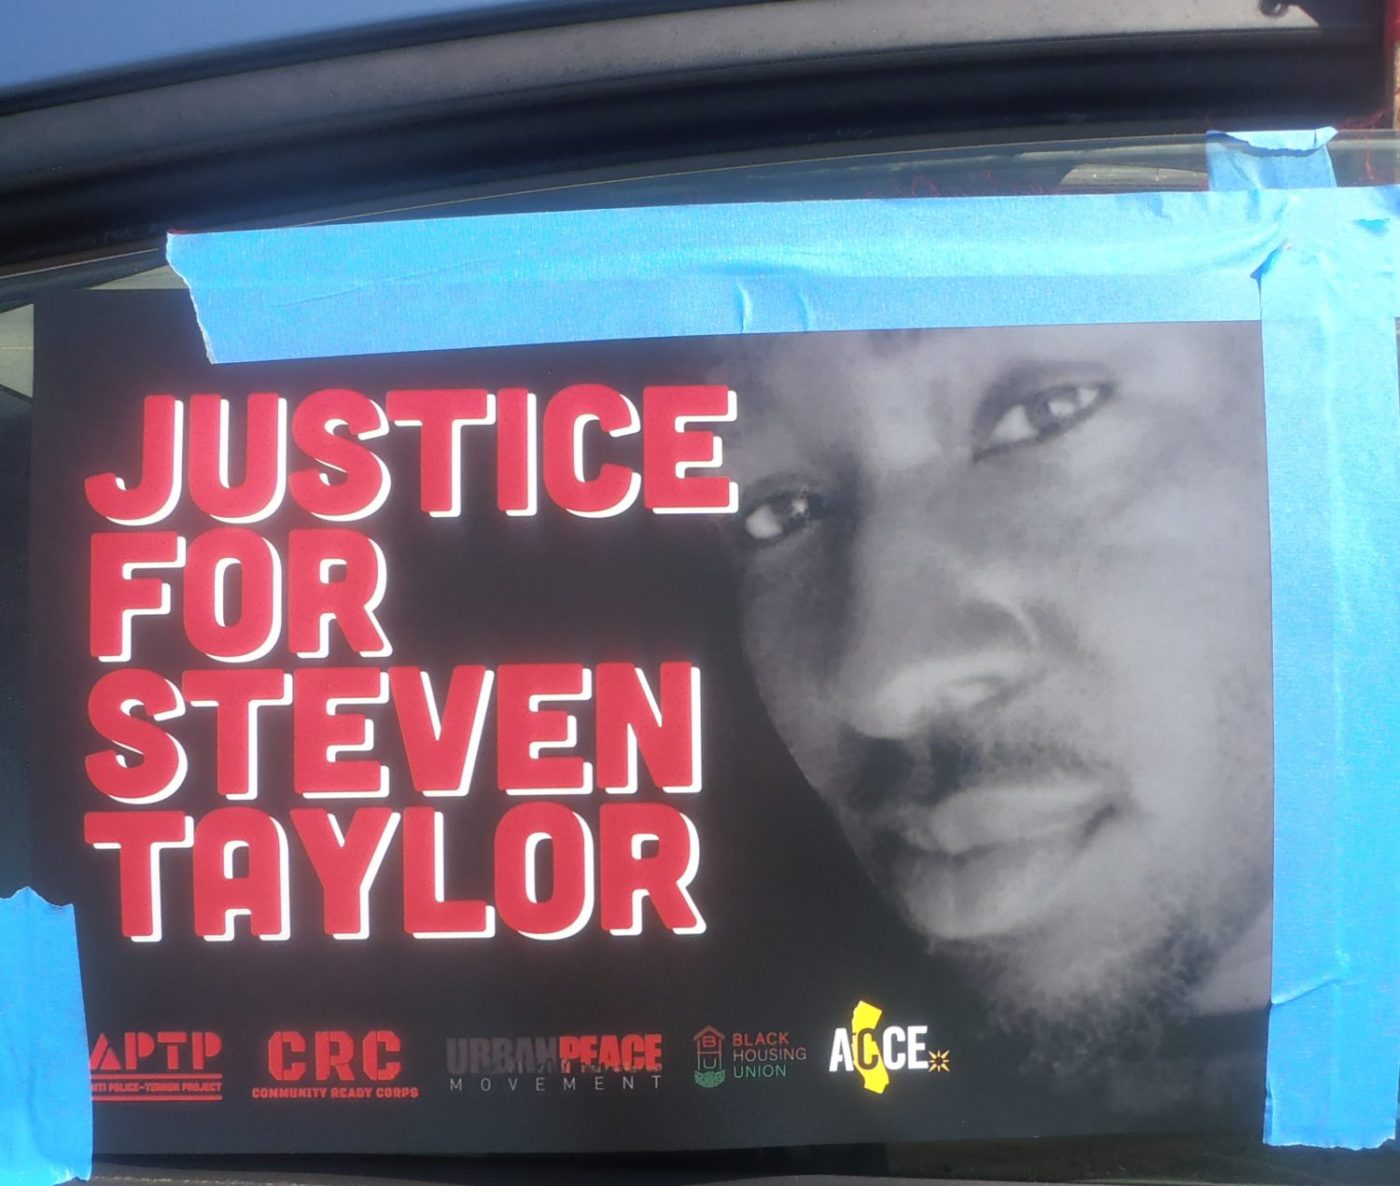 Justice-for-Steven-Taylor'-car-caravan-0420-by-Baba-Jahahara-1400x1186, WE are the 'eight ball'!, Culture Currents